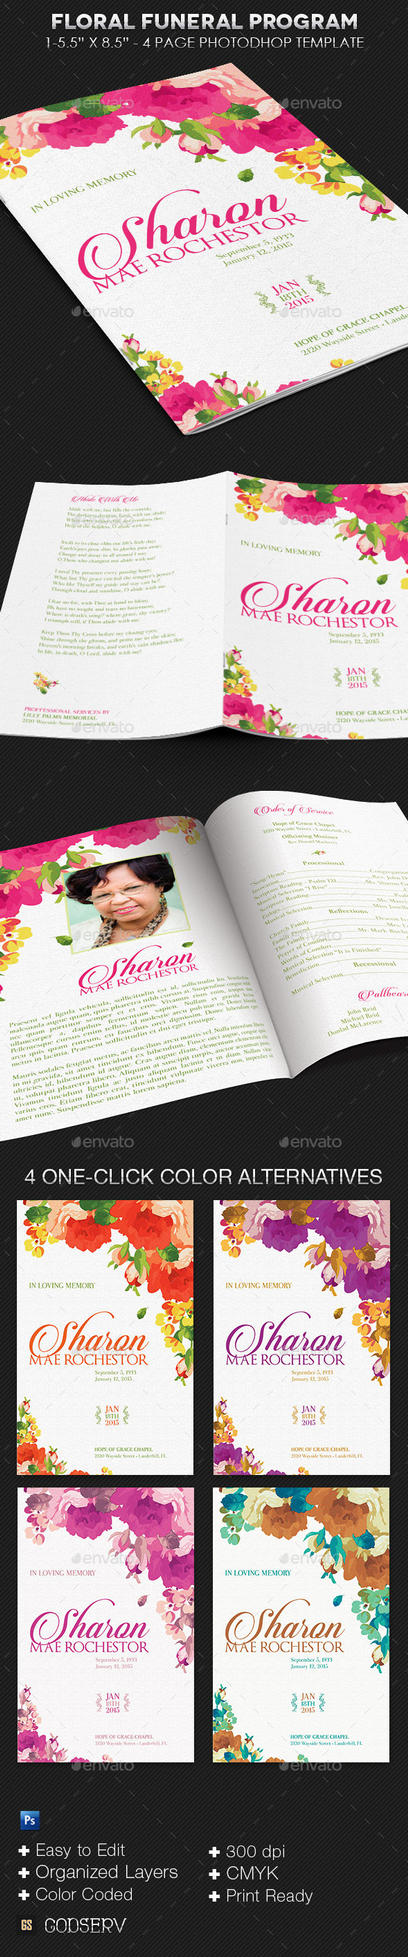 Floral Funeral Program Template by Godserv